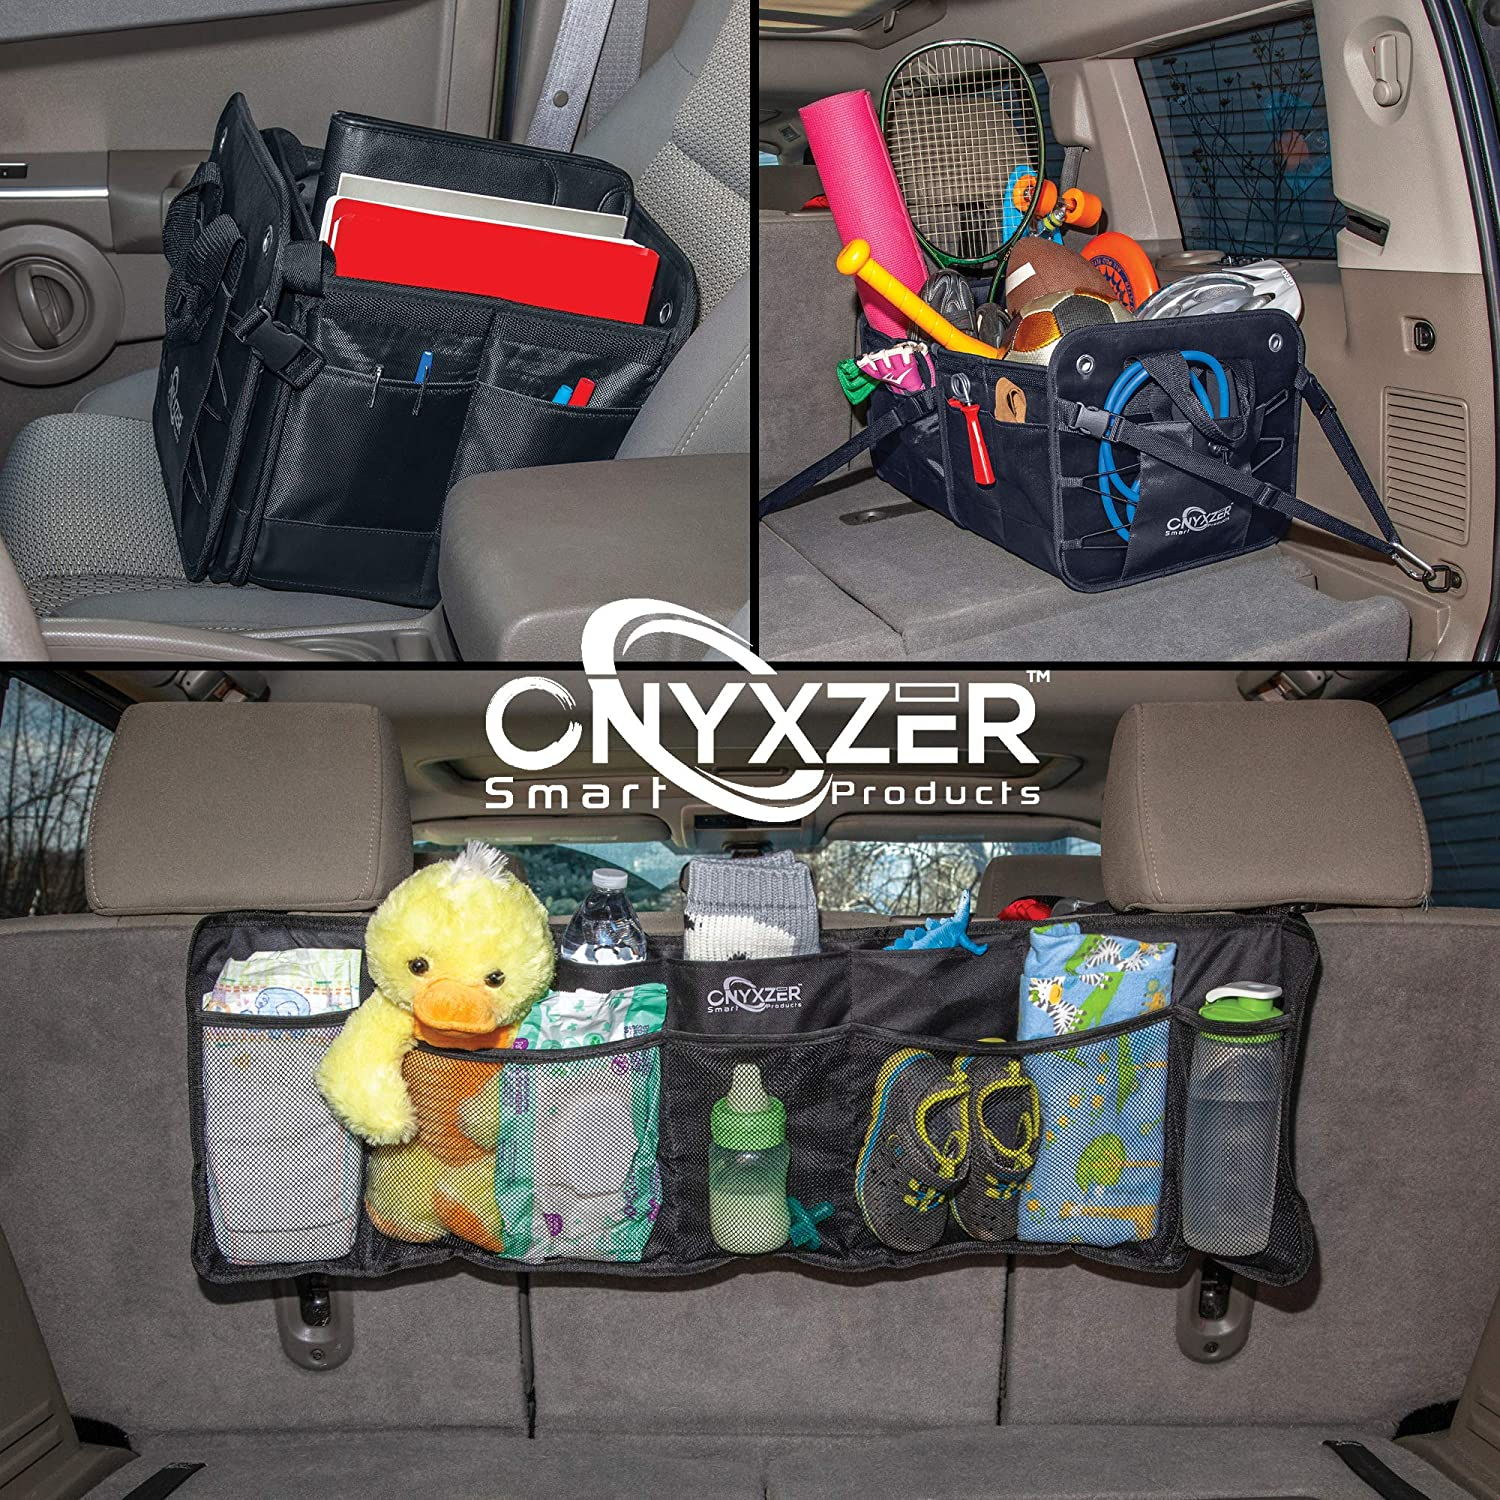 Stainless Hooks ONYXZER Trunk Organizer for Car and SUV Heavy Duty Collapsible Trunk Storage Organizer Straps and Non-Slip Bottom Strips to Prevent Sliding Free Backseat Trunk Organizer ONX-1020